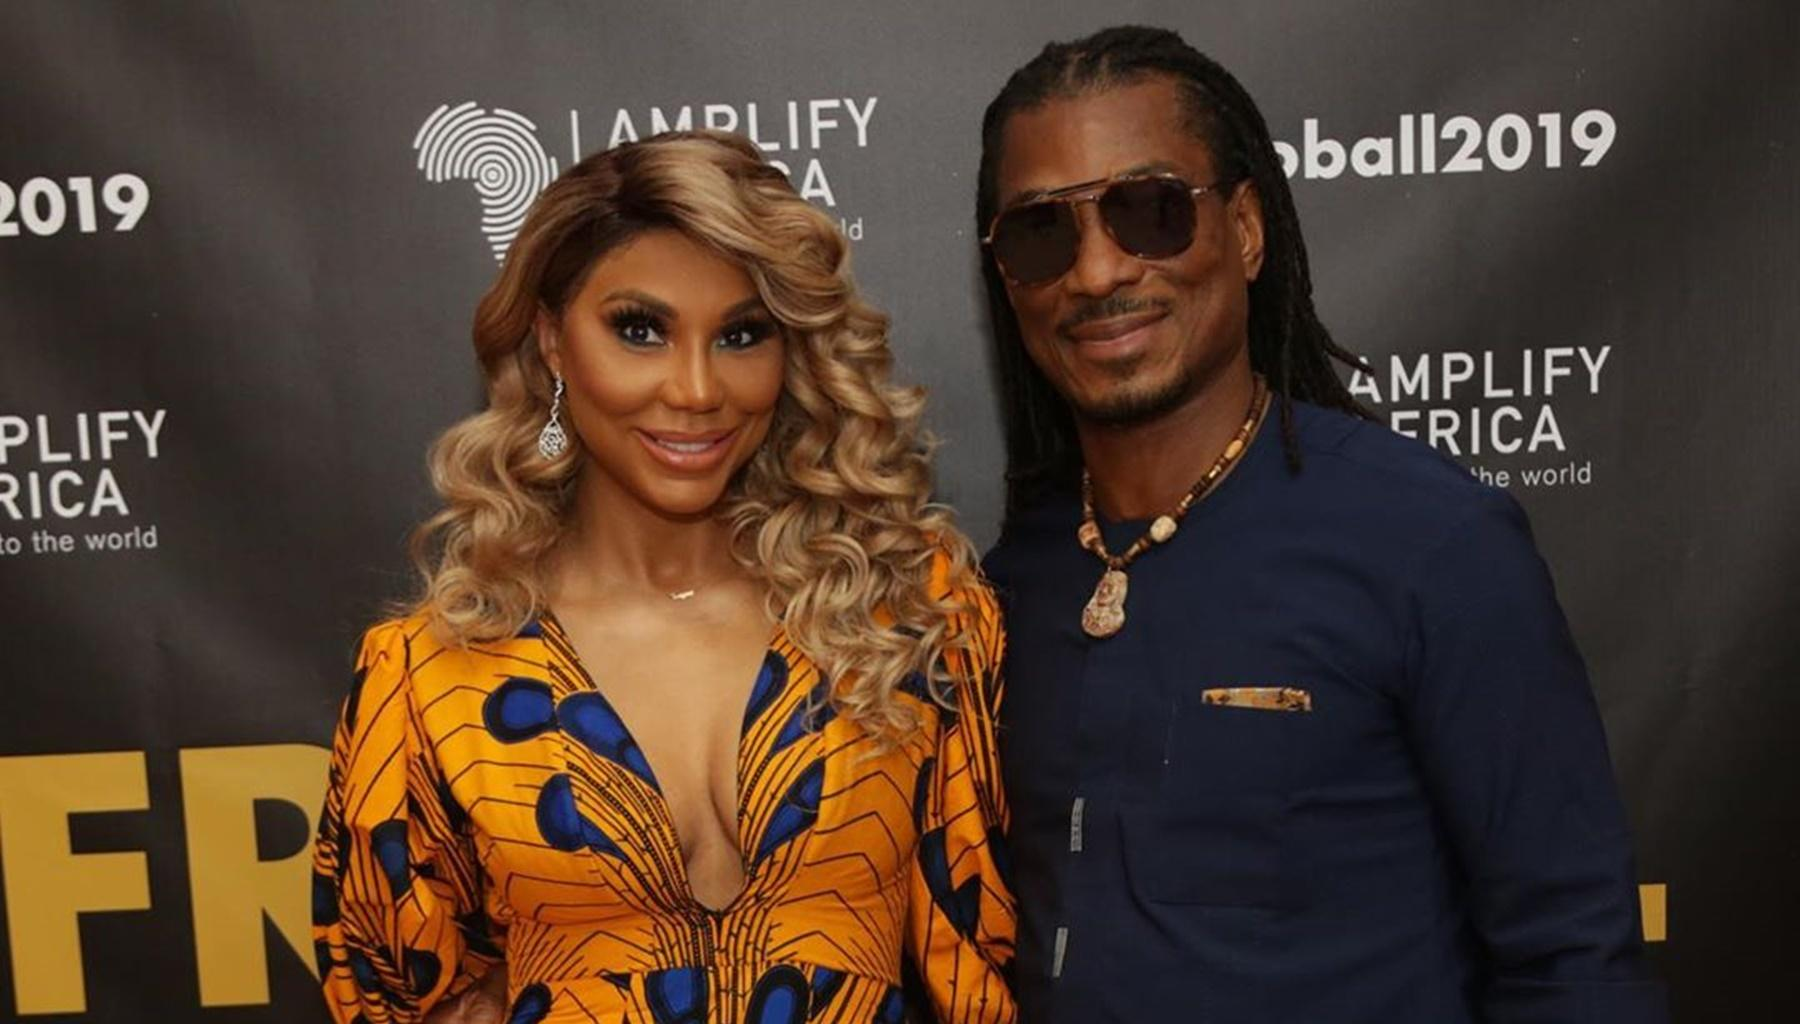 Tamar Braxton's BF, David Adefeso Shares The Most Powerful Message Of Love And Support You'll See - Check It Out Here To See Tamar Through His Eyes